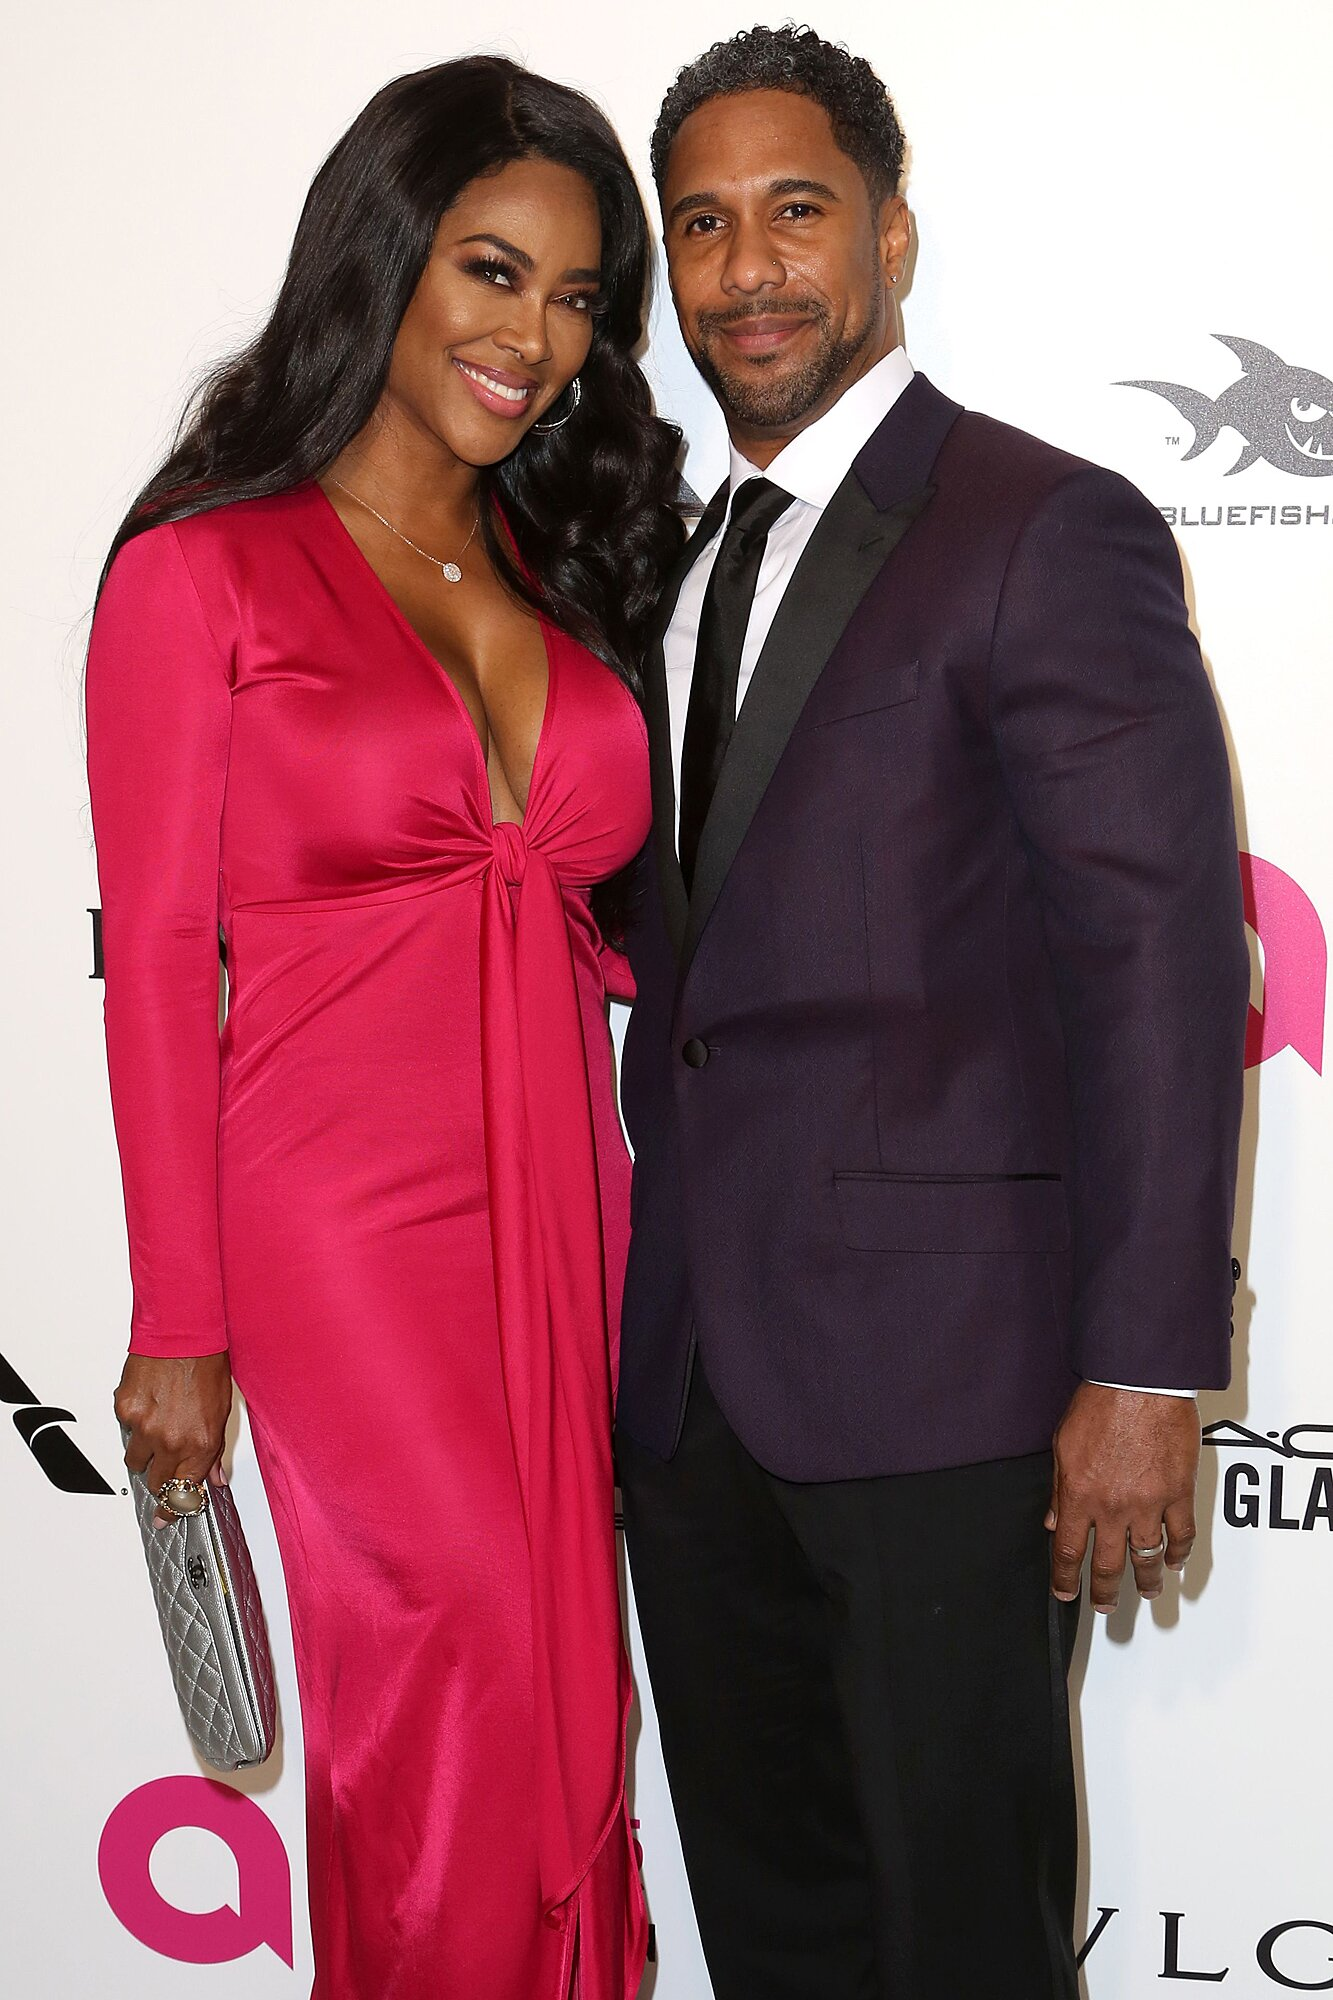 Rhoa Star Kenya Moore Husband Marc Daly Split After 2 Years Of Marriage Ew Com